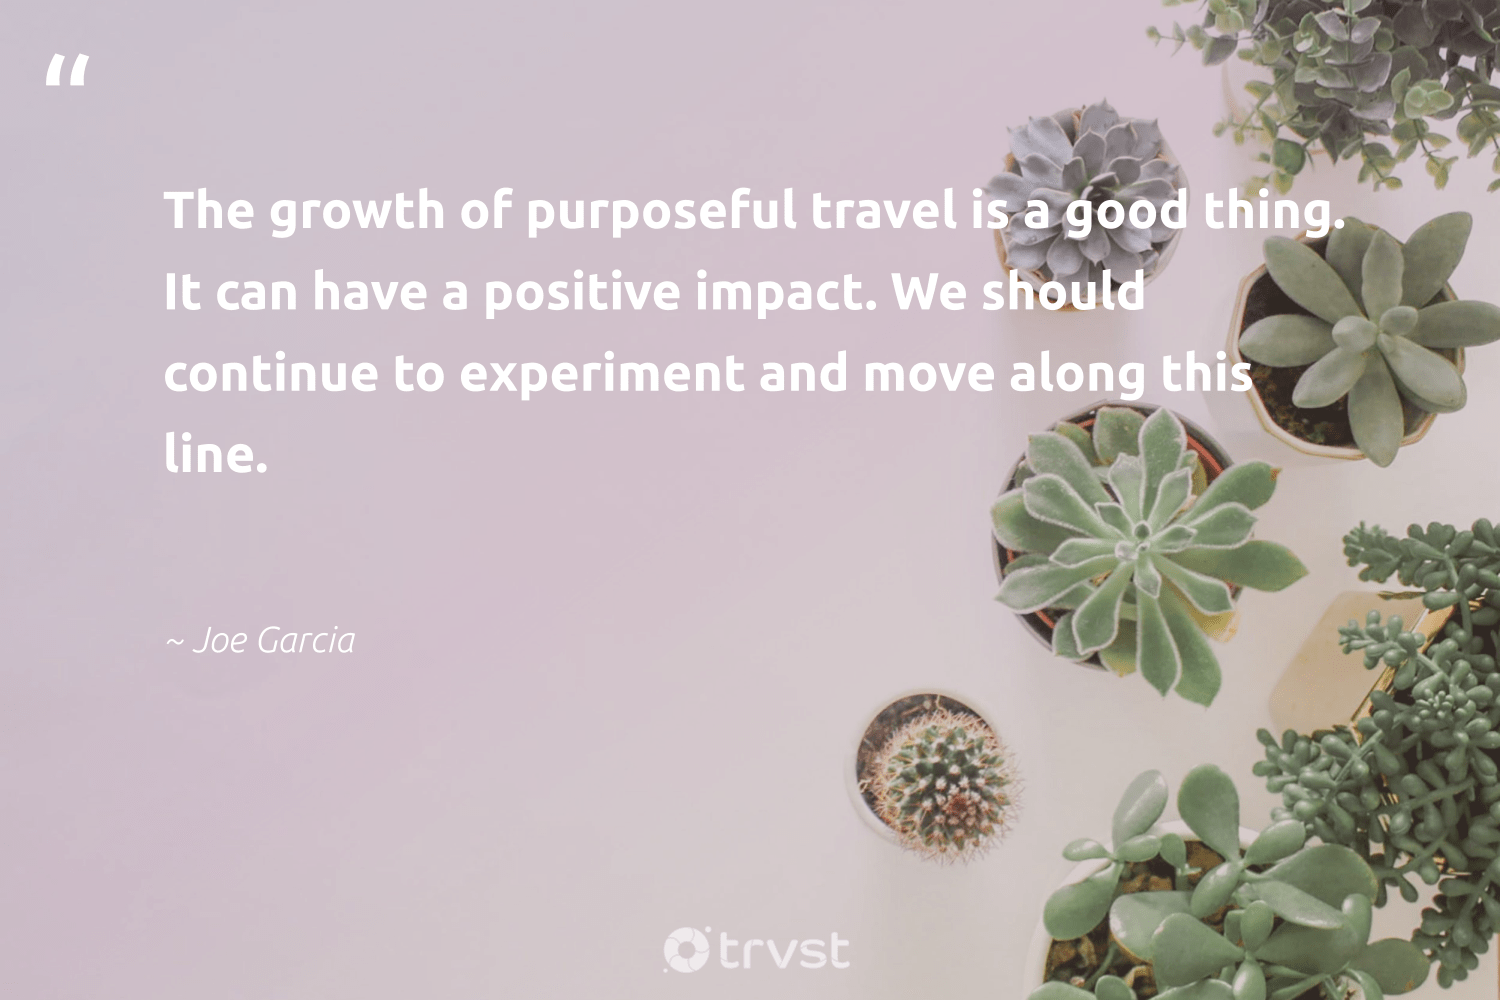 """The growth of purposeful travel is a good thing. It can have a positive impact. We should continue to experiment and move along this line.""  - Joe Garcia #trvst #quotes #impact #travel #shellfish #ethicalbusiness #invertebrate #thinkgreen #underwaterphotography #giveback #flowers #dosomething"